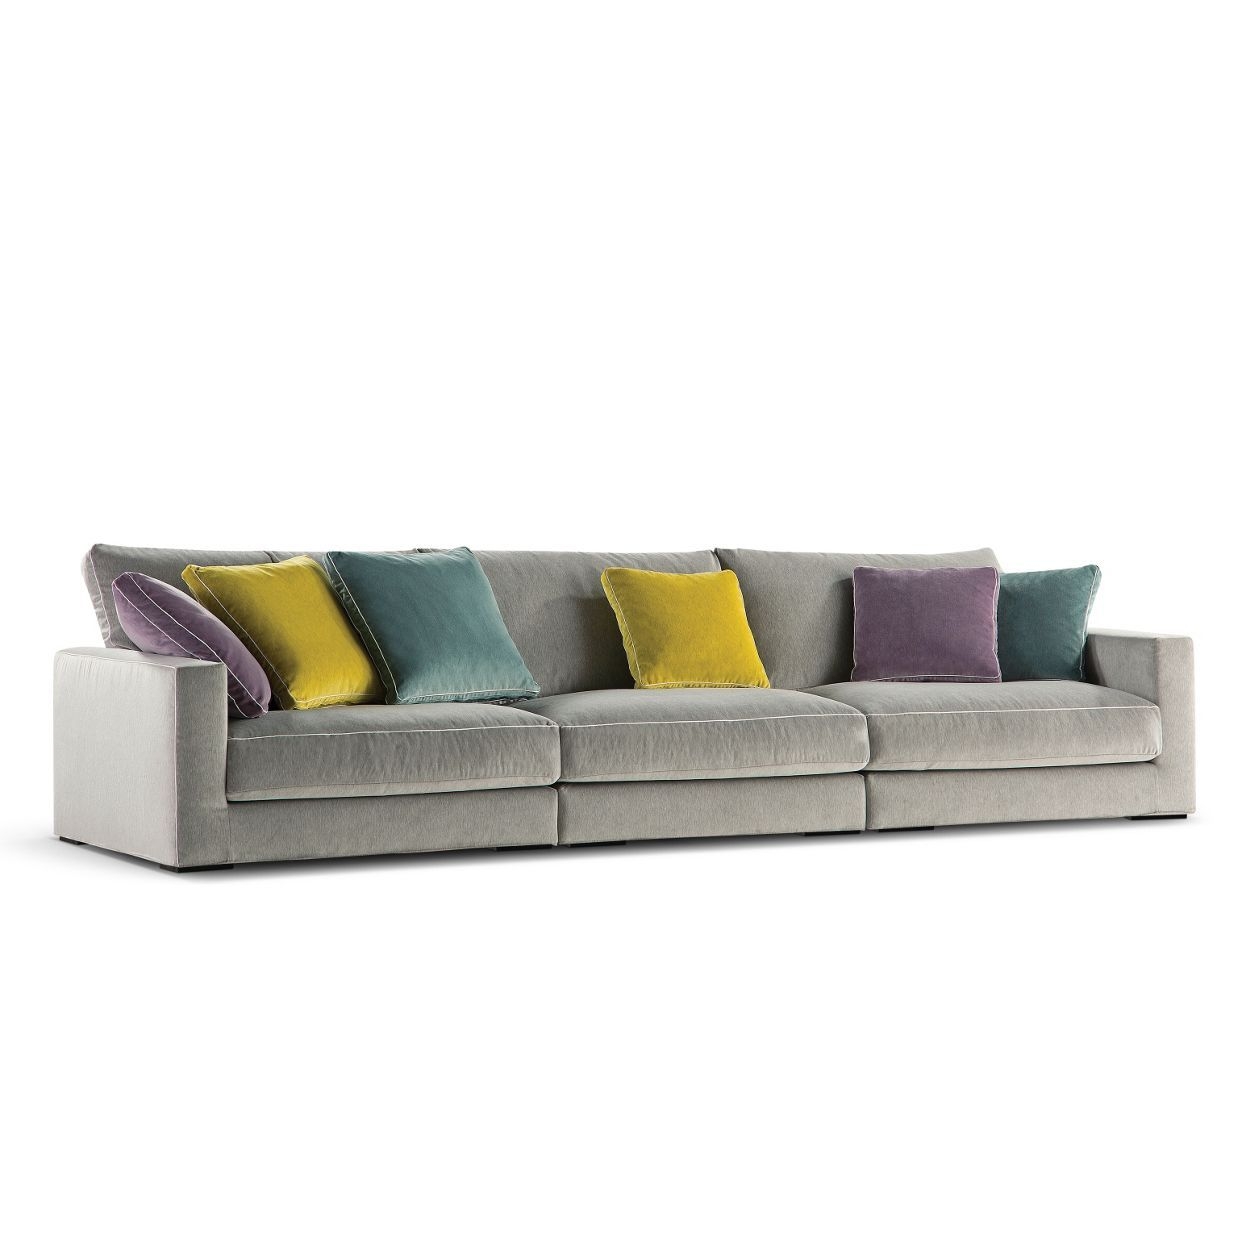 Long island 2 straight composition sofas nouveaux - Living room furniture long island ...